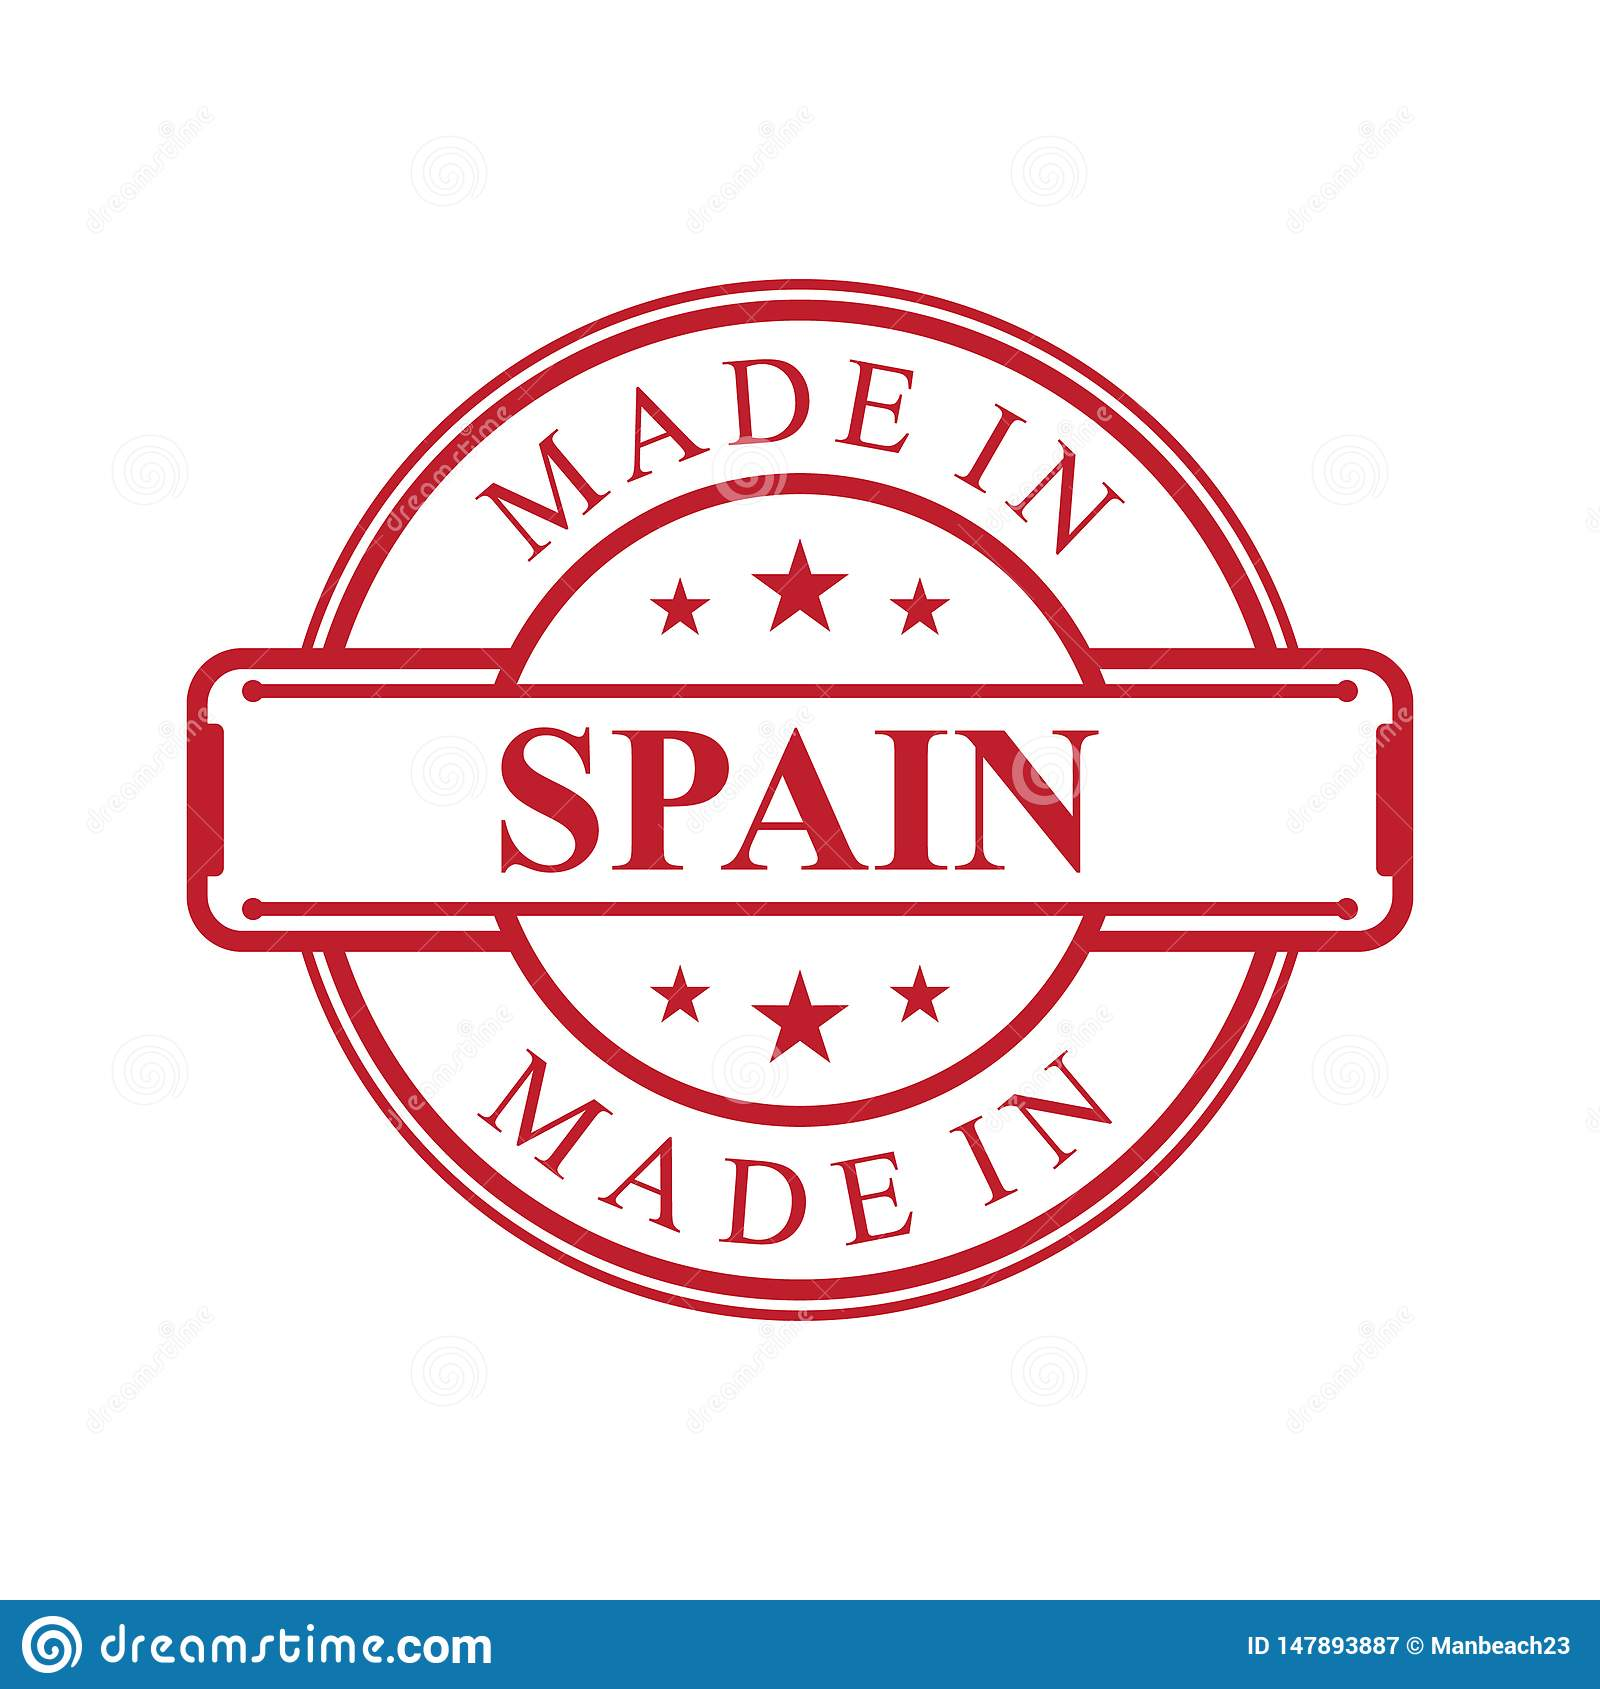 Made In Spain Label Icon With Red Color Emblem On The